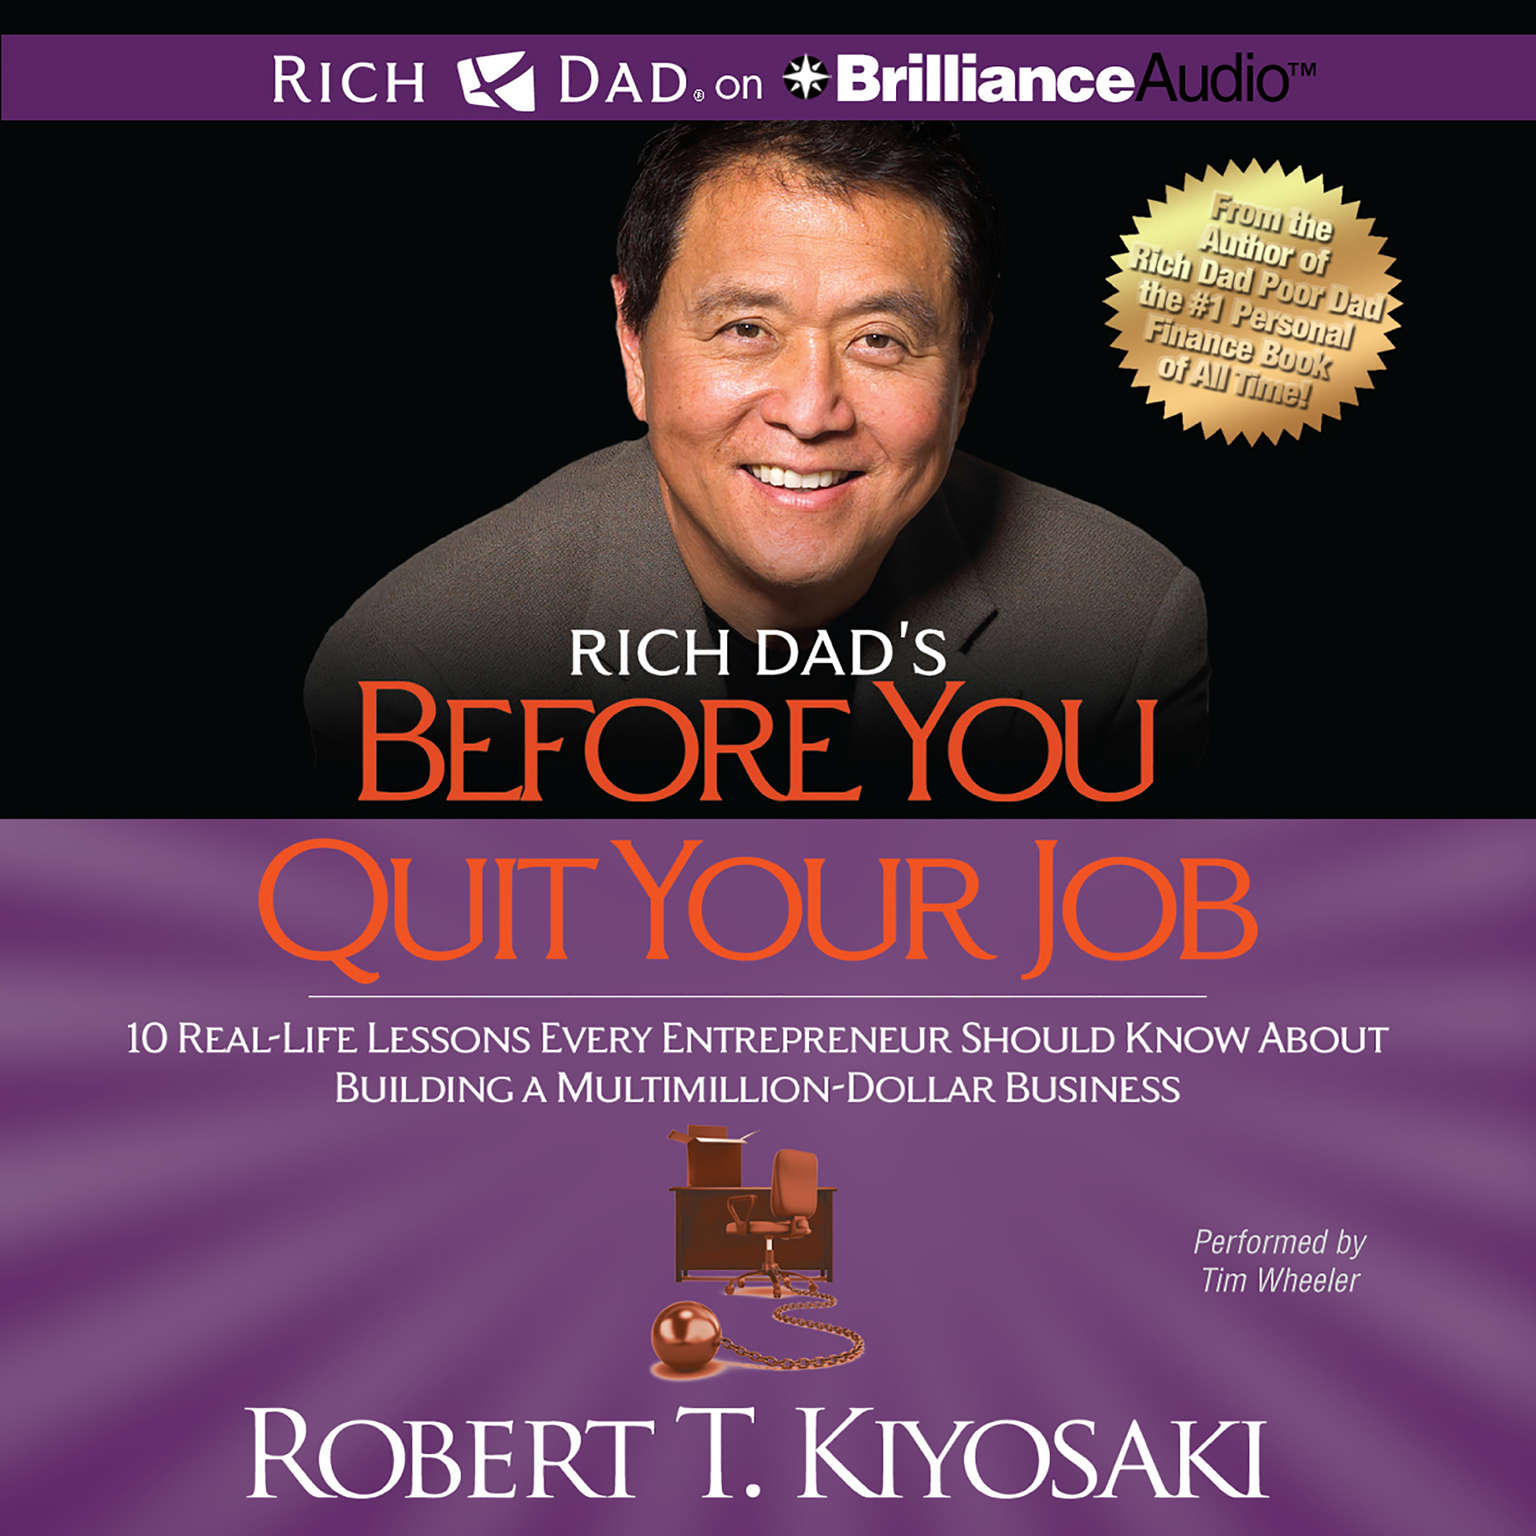 Printable Rich Dad's Before You Quit Your Job: 10 Real-Life Lessons Every Entrepreneur Should Know About Building a Multimillion-Dollar Business Audiobook Cover Art